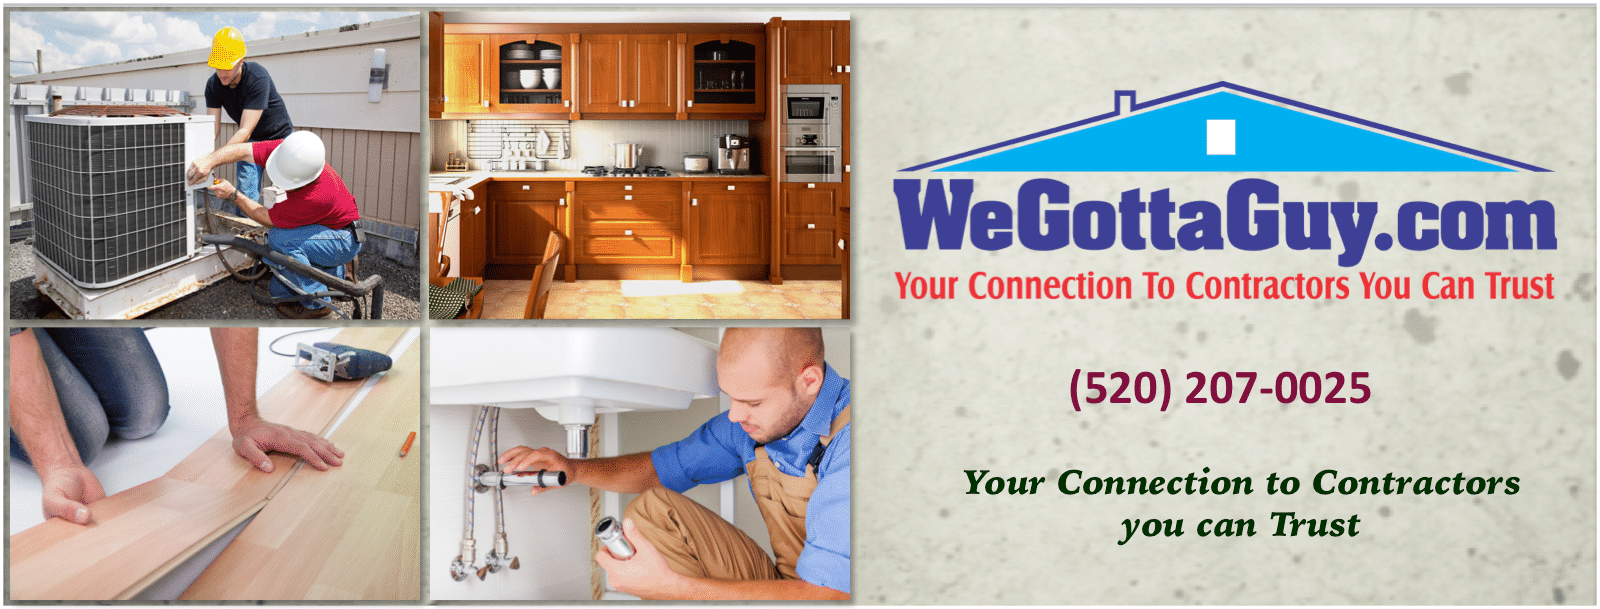 contact us kitchen remodel tucson Contact Us